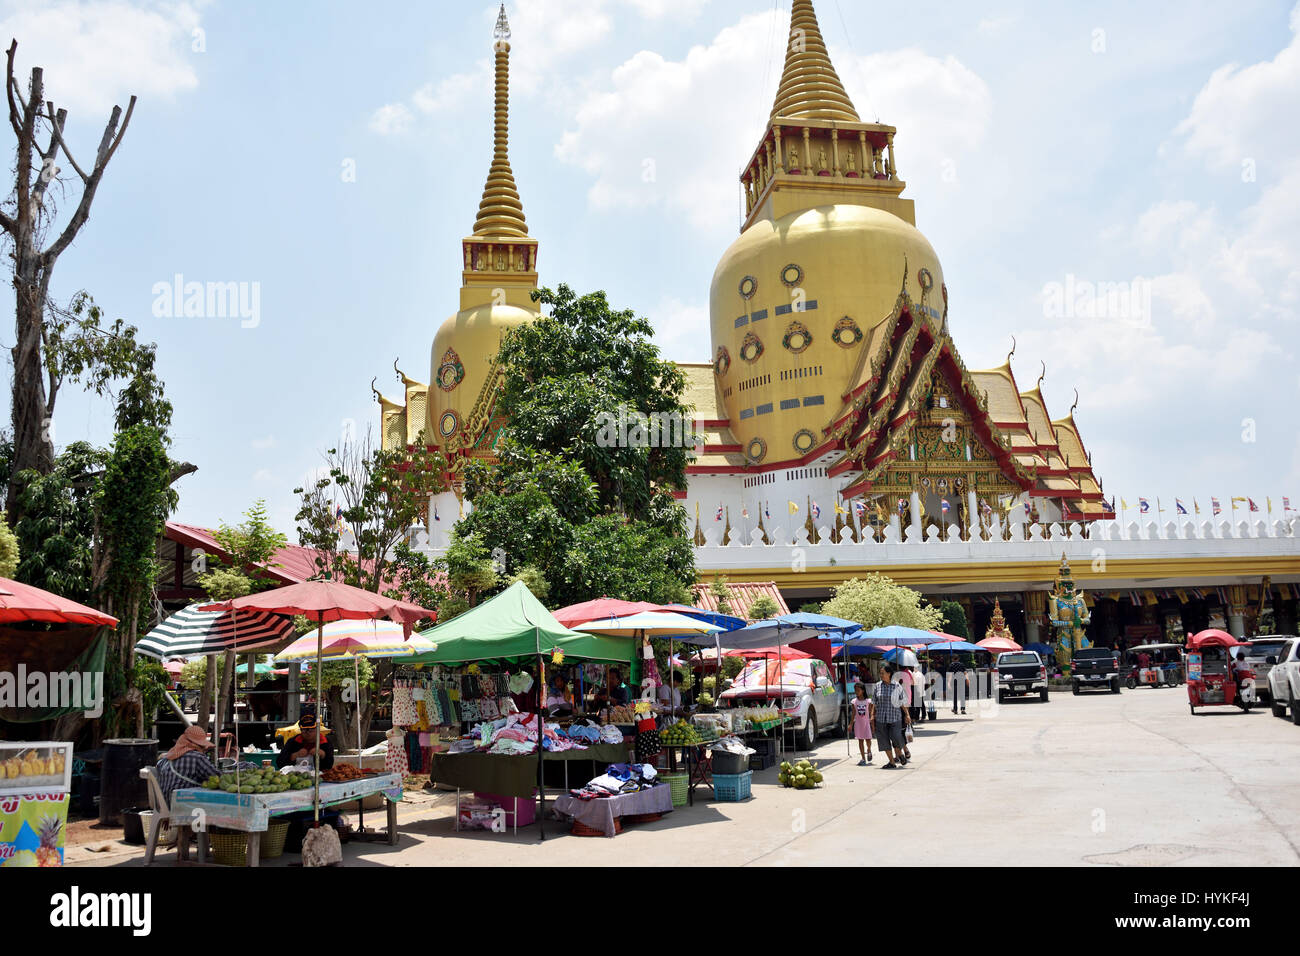 A small market in front of the beautiful golden ubolsot of Wat Phrong Akat in Bang Nam Phriao District in Central - Stock Image